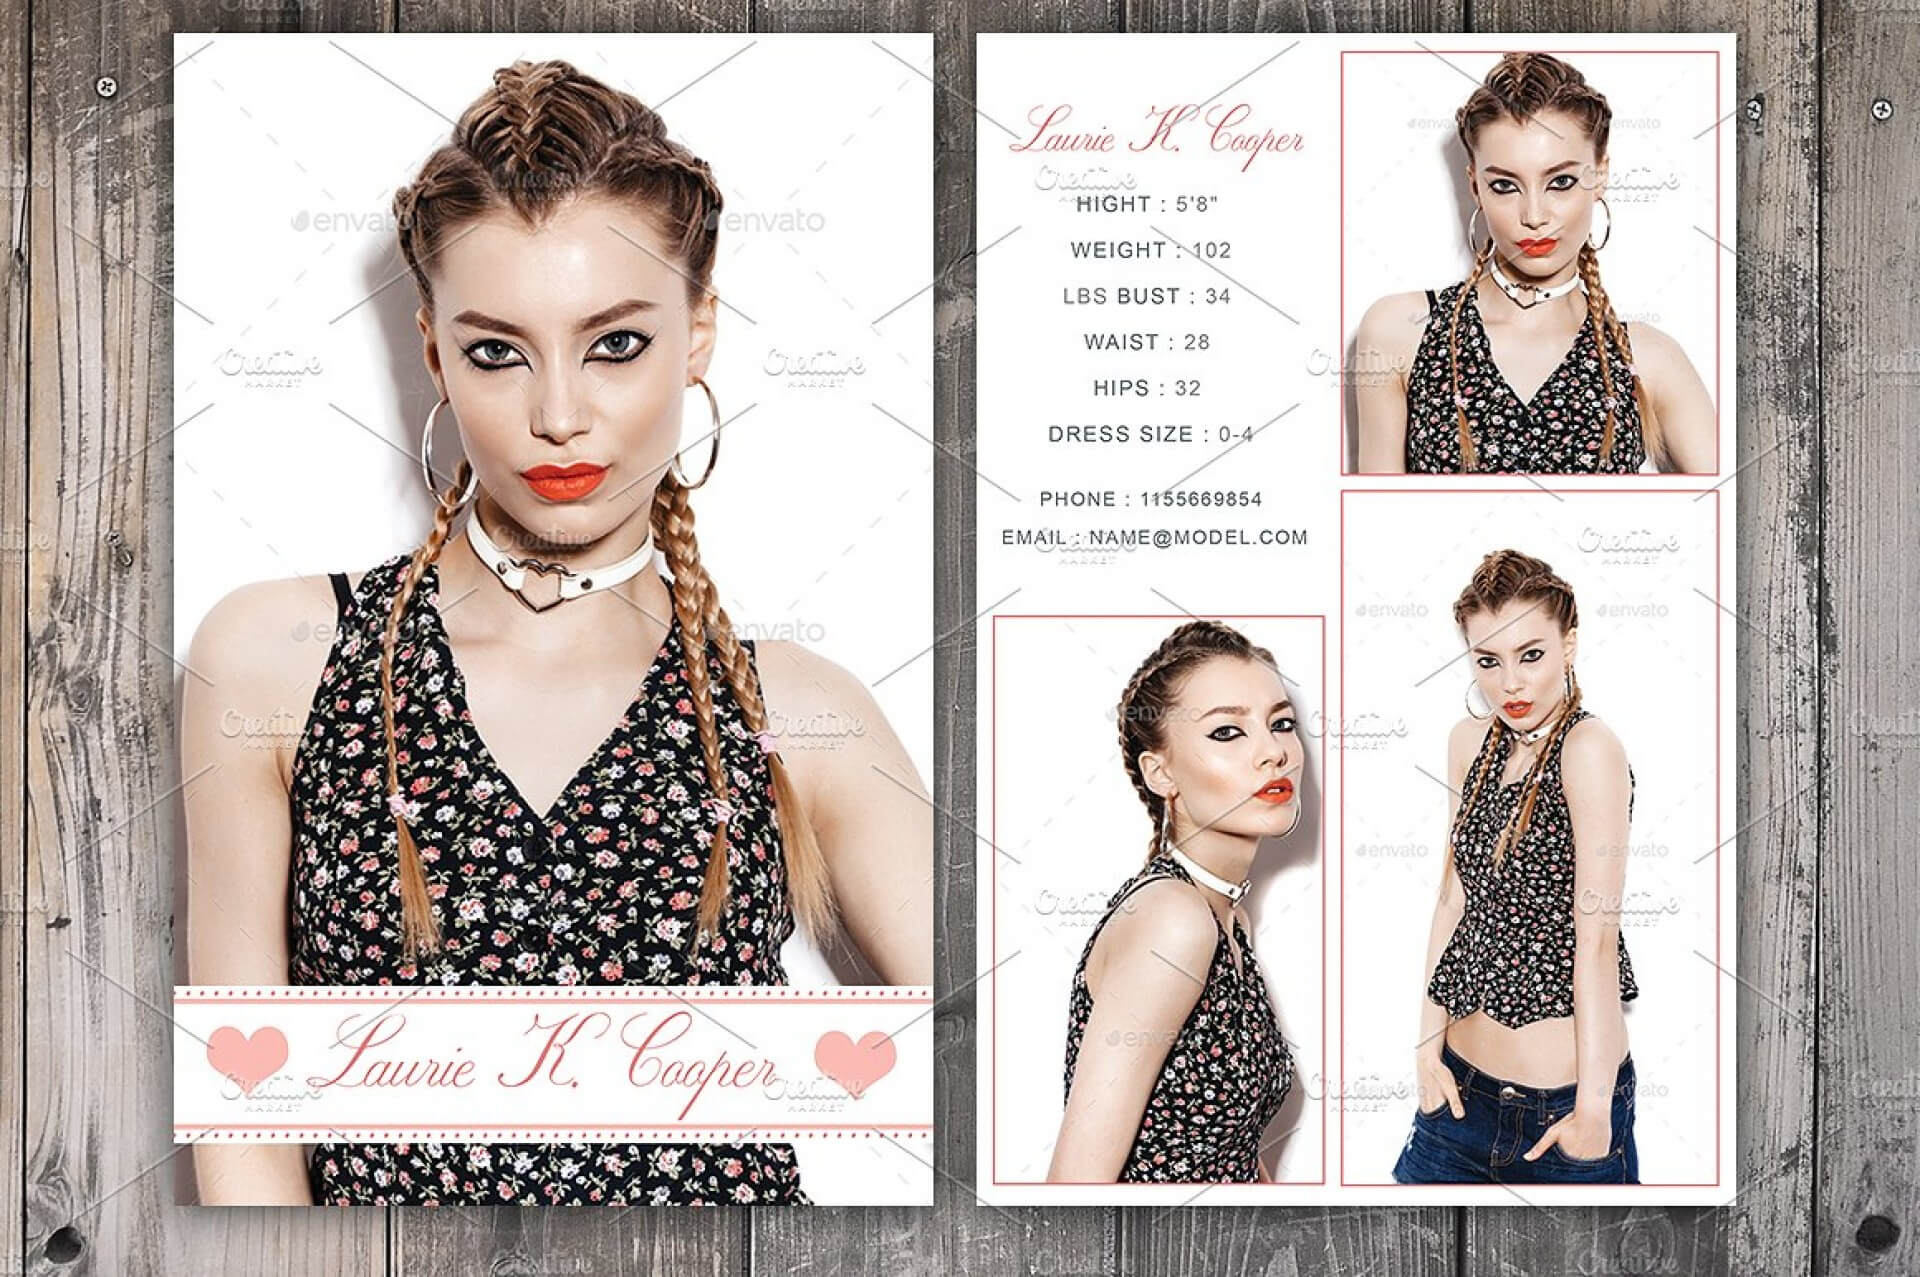 Free Comp Card Template Brochure Templates For Mac Photoshop Regarding Comp Card Template Download